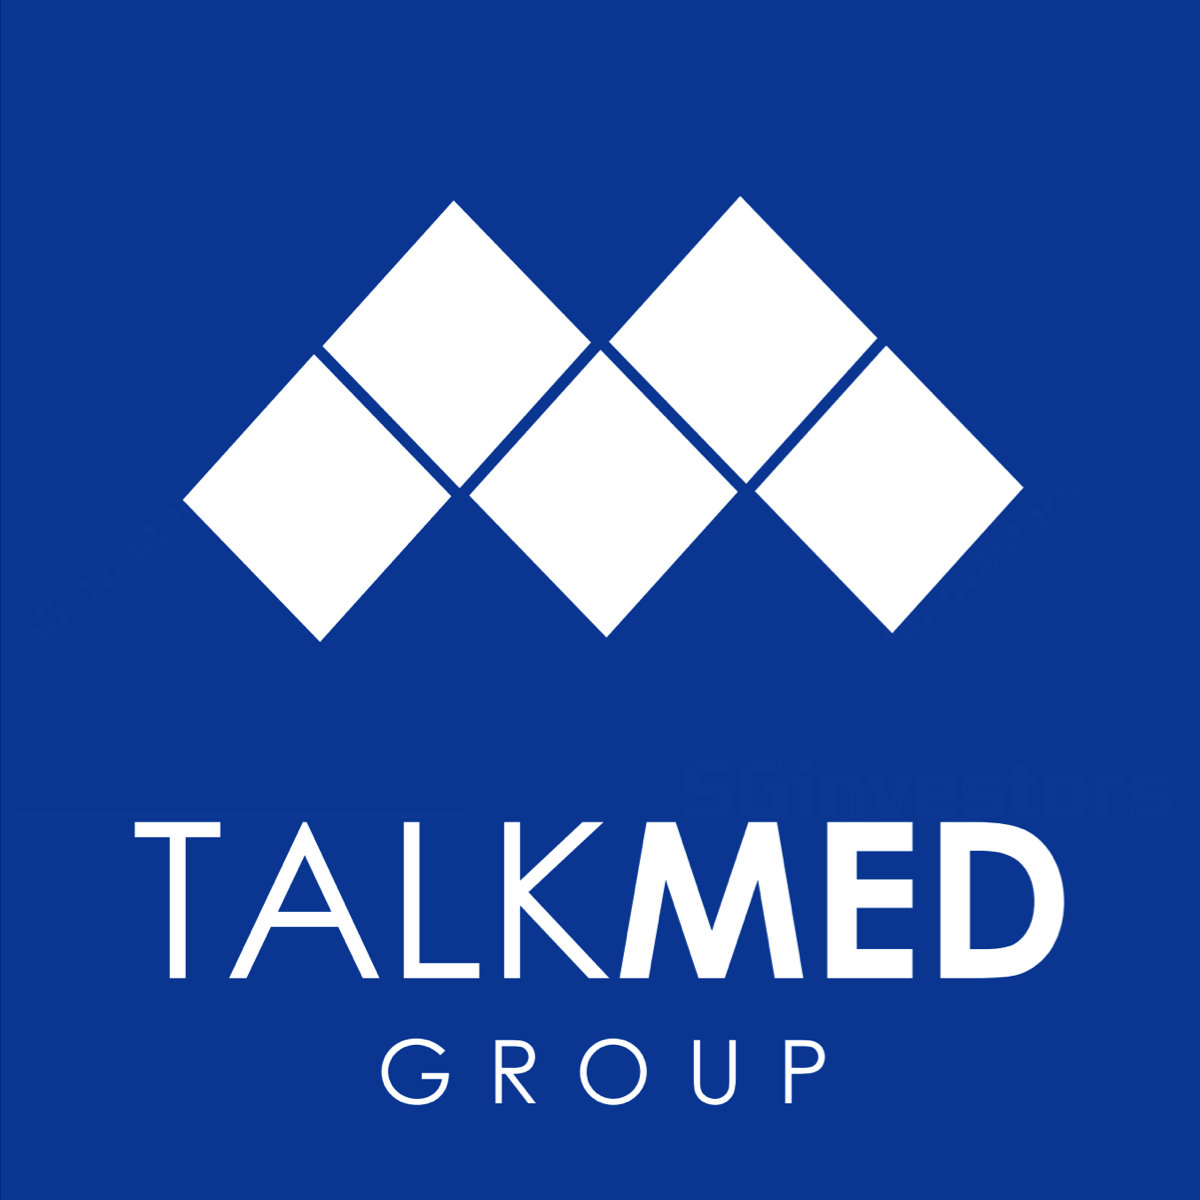 TalkMed Group - RHB Invest 2018-04-27: Better Quarters Ahead With Dr Ang's Return